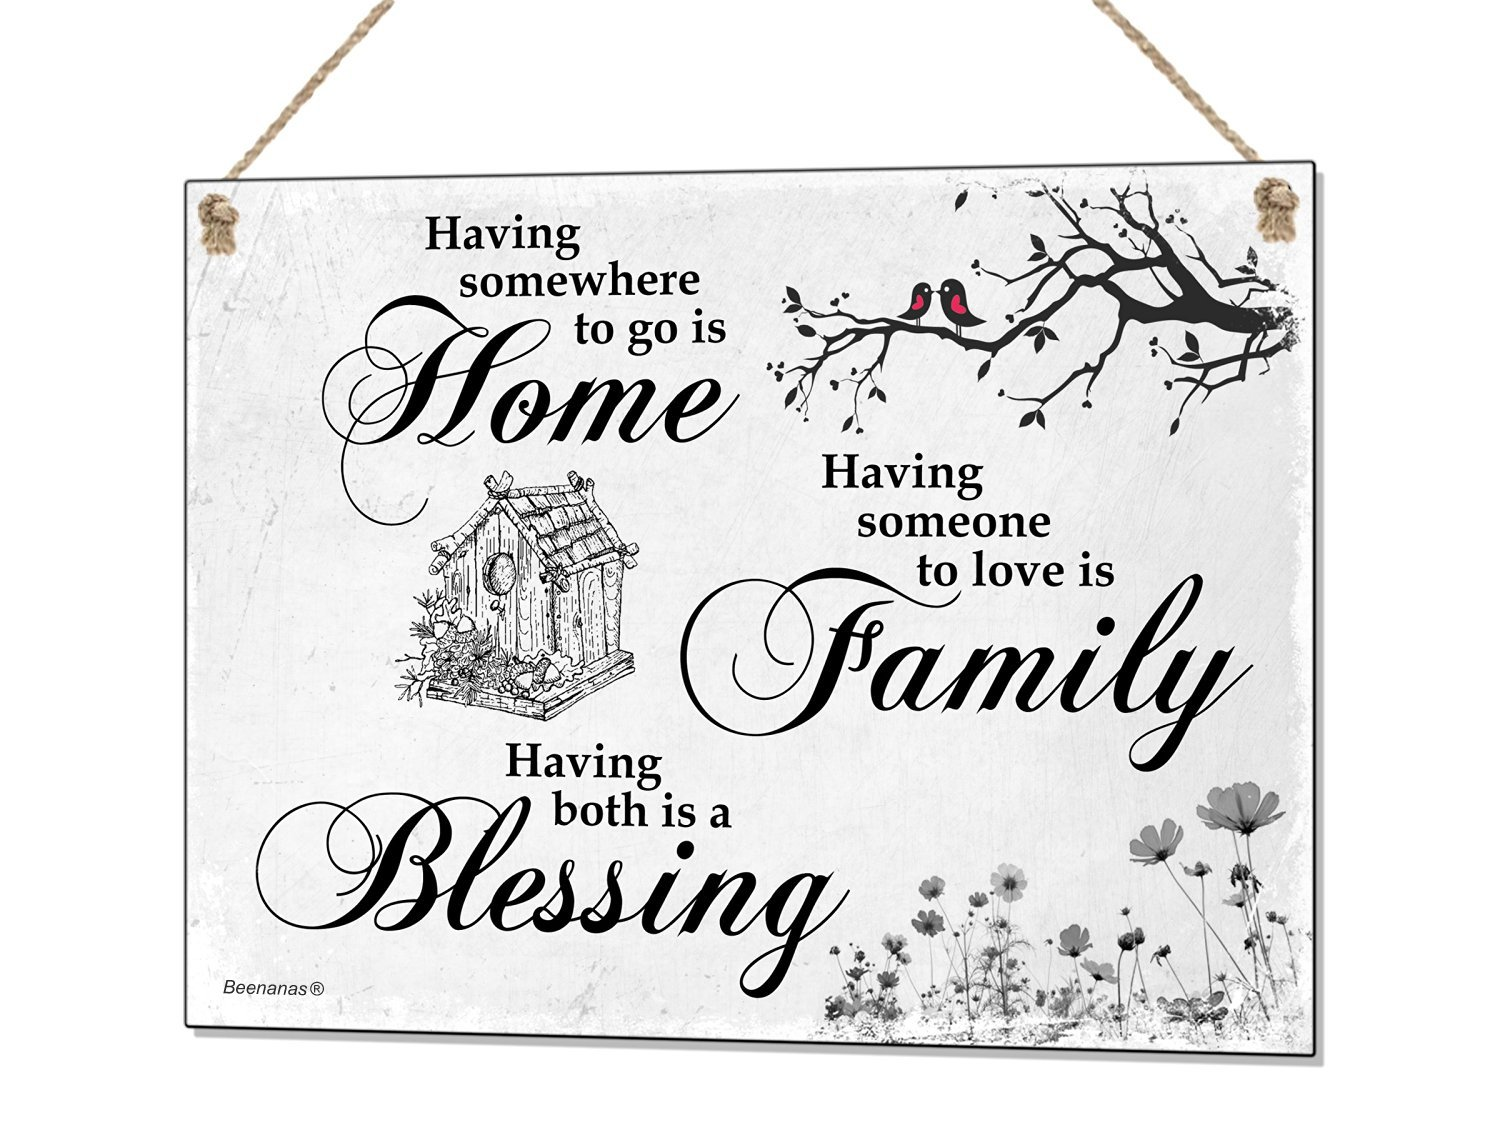 Home Family Blessing Metal Sign Tin Plaque Quote Wall Art Decor:  Amazon.co.uk: Kitchen U0026 Home